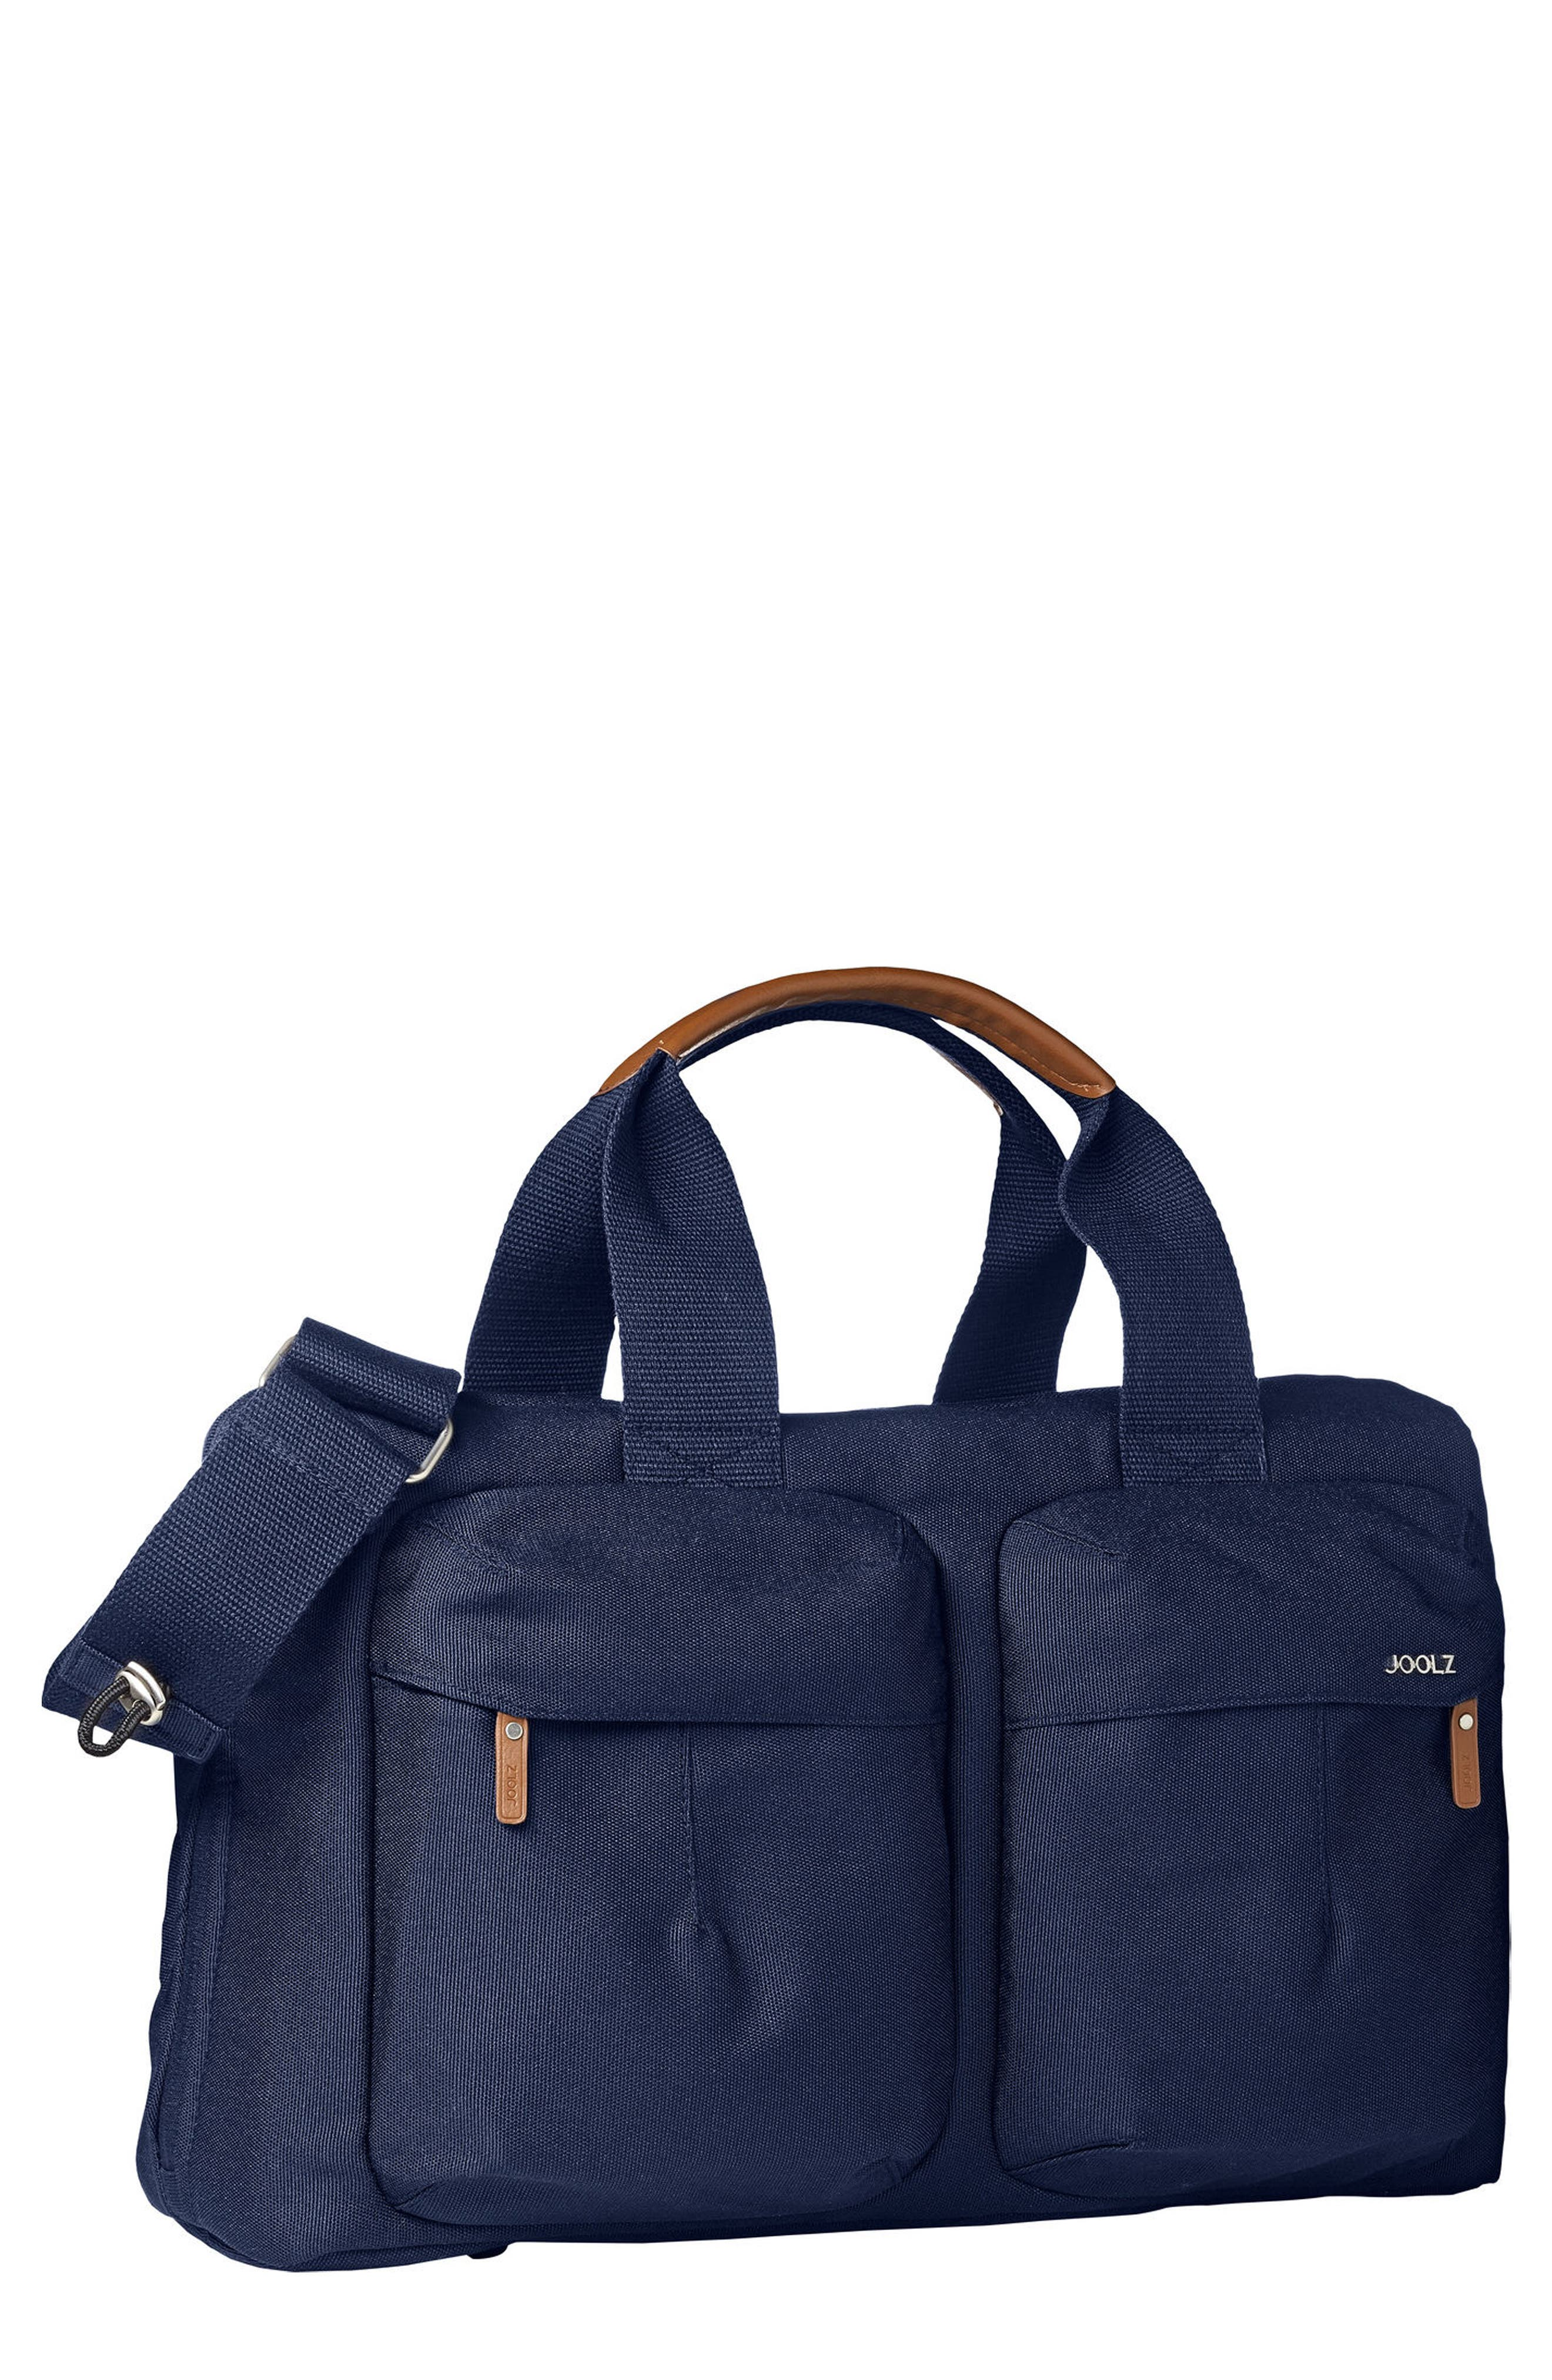 Earth Diaper Bag,                             Main thumbnail 1, color,                             Parrot Blue